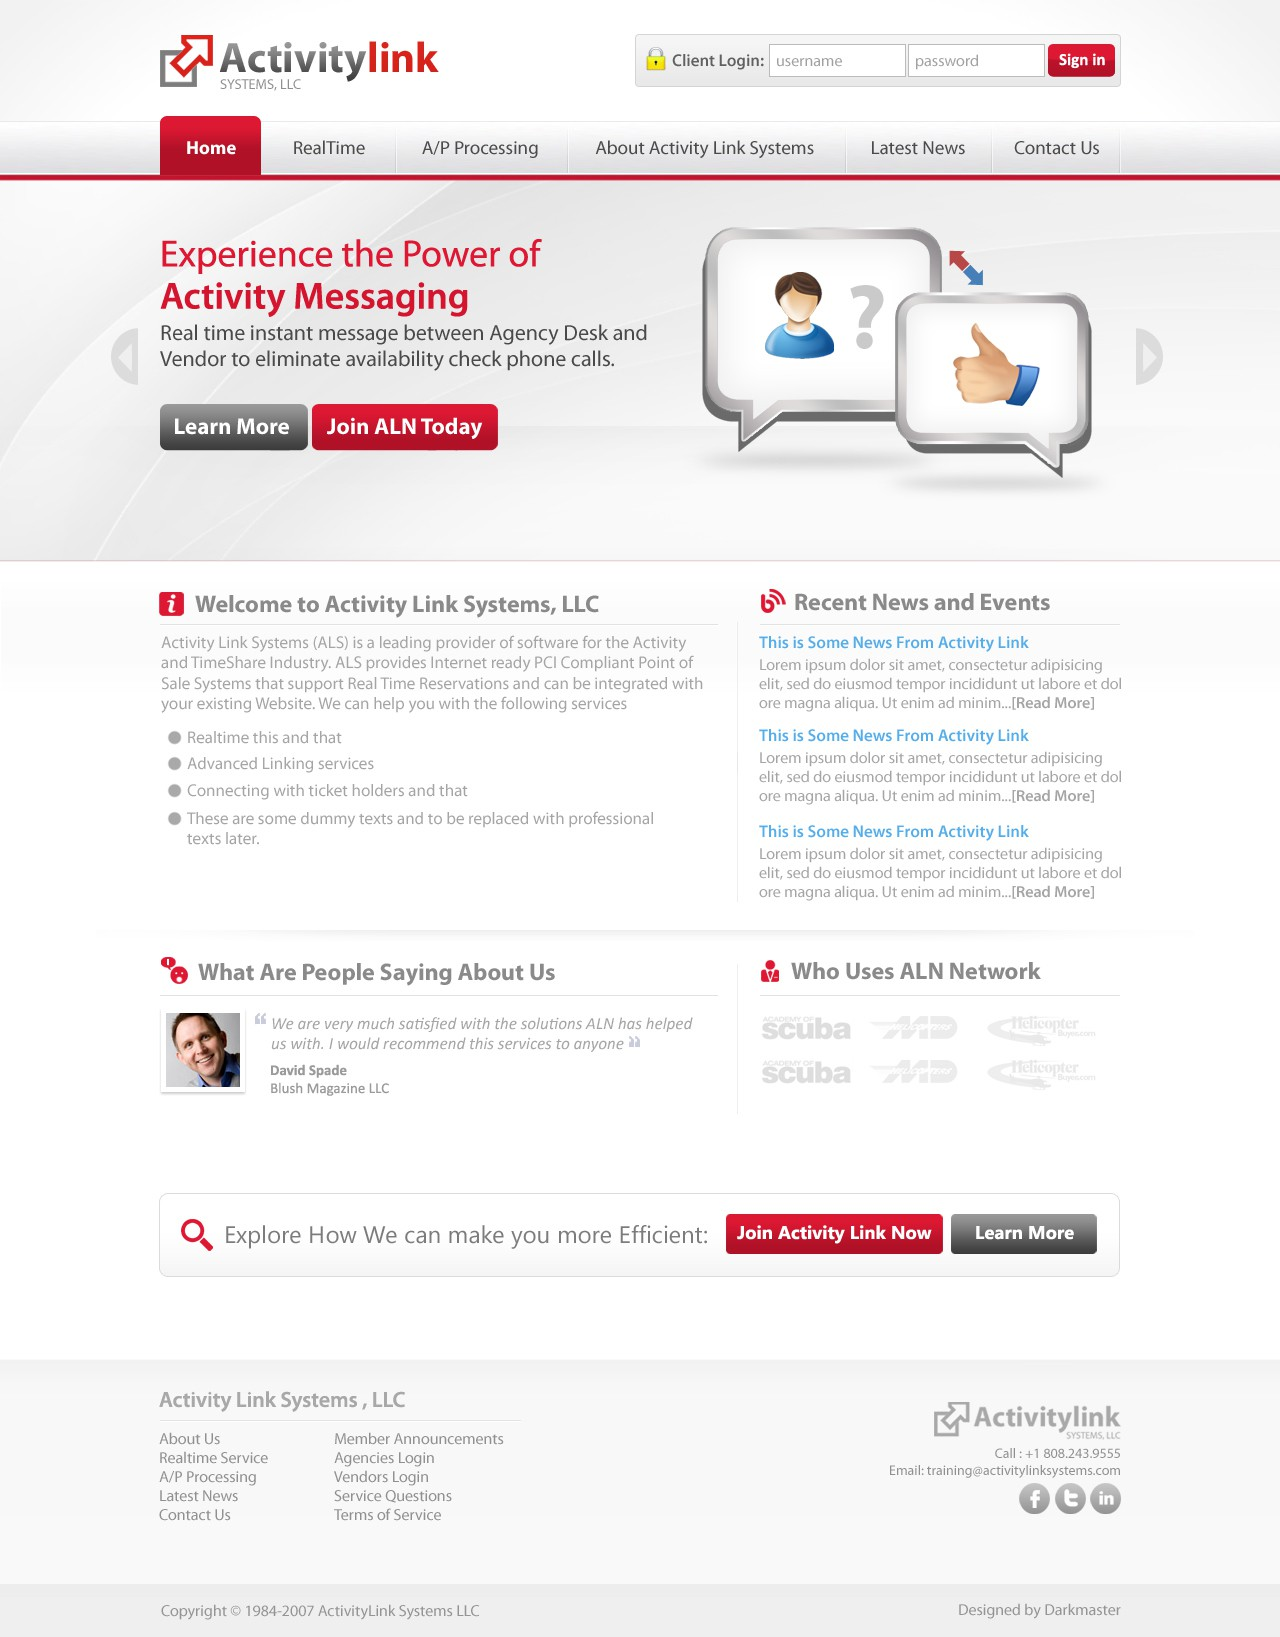 Create the next website design for Activity Link Systems, LLC